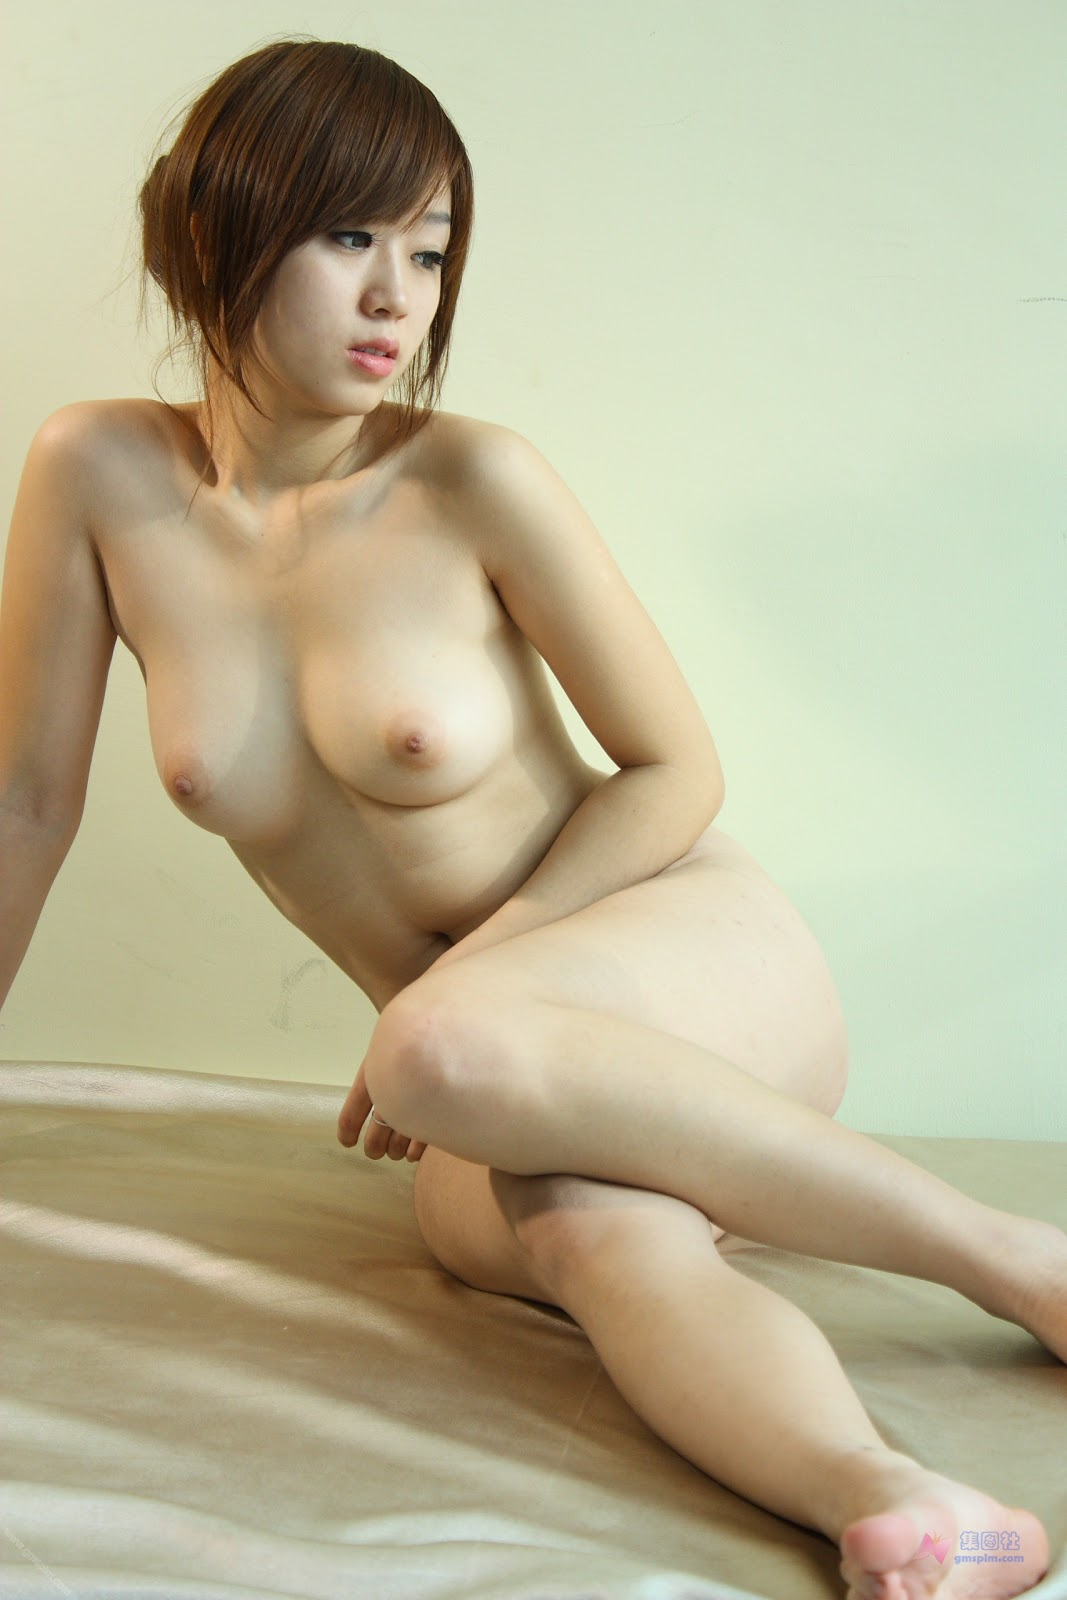 Apologise, Korea model babes nude opinion you